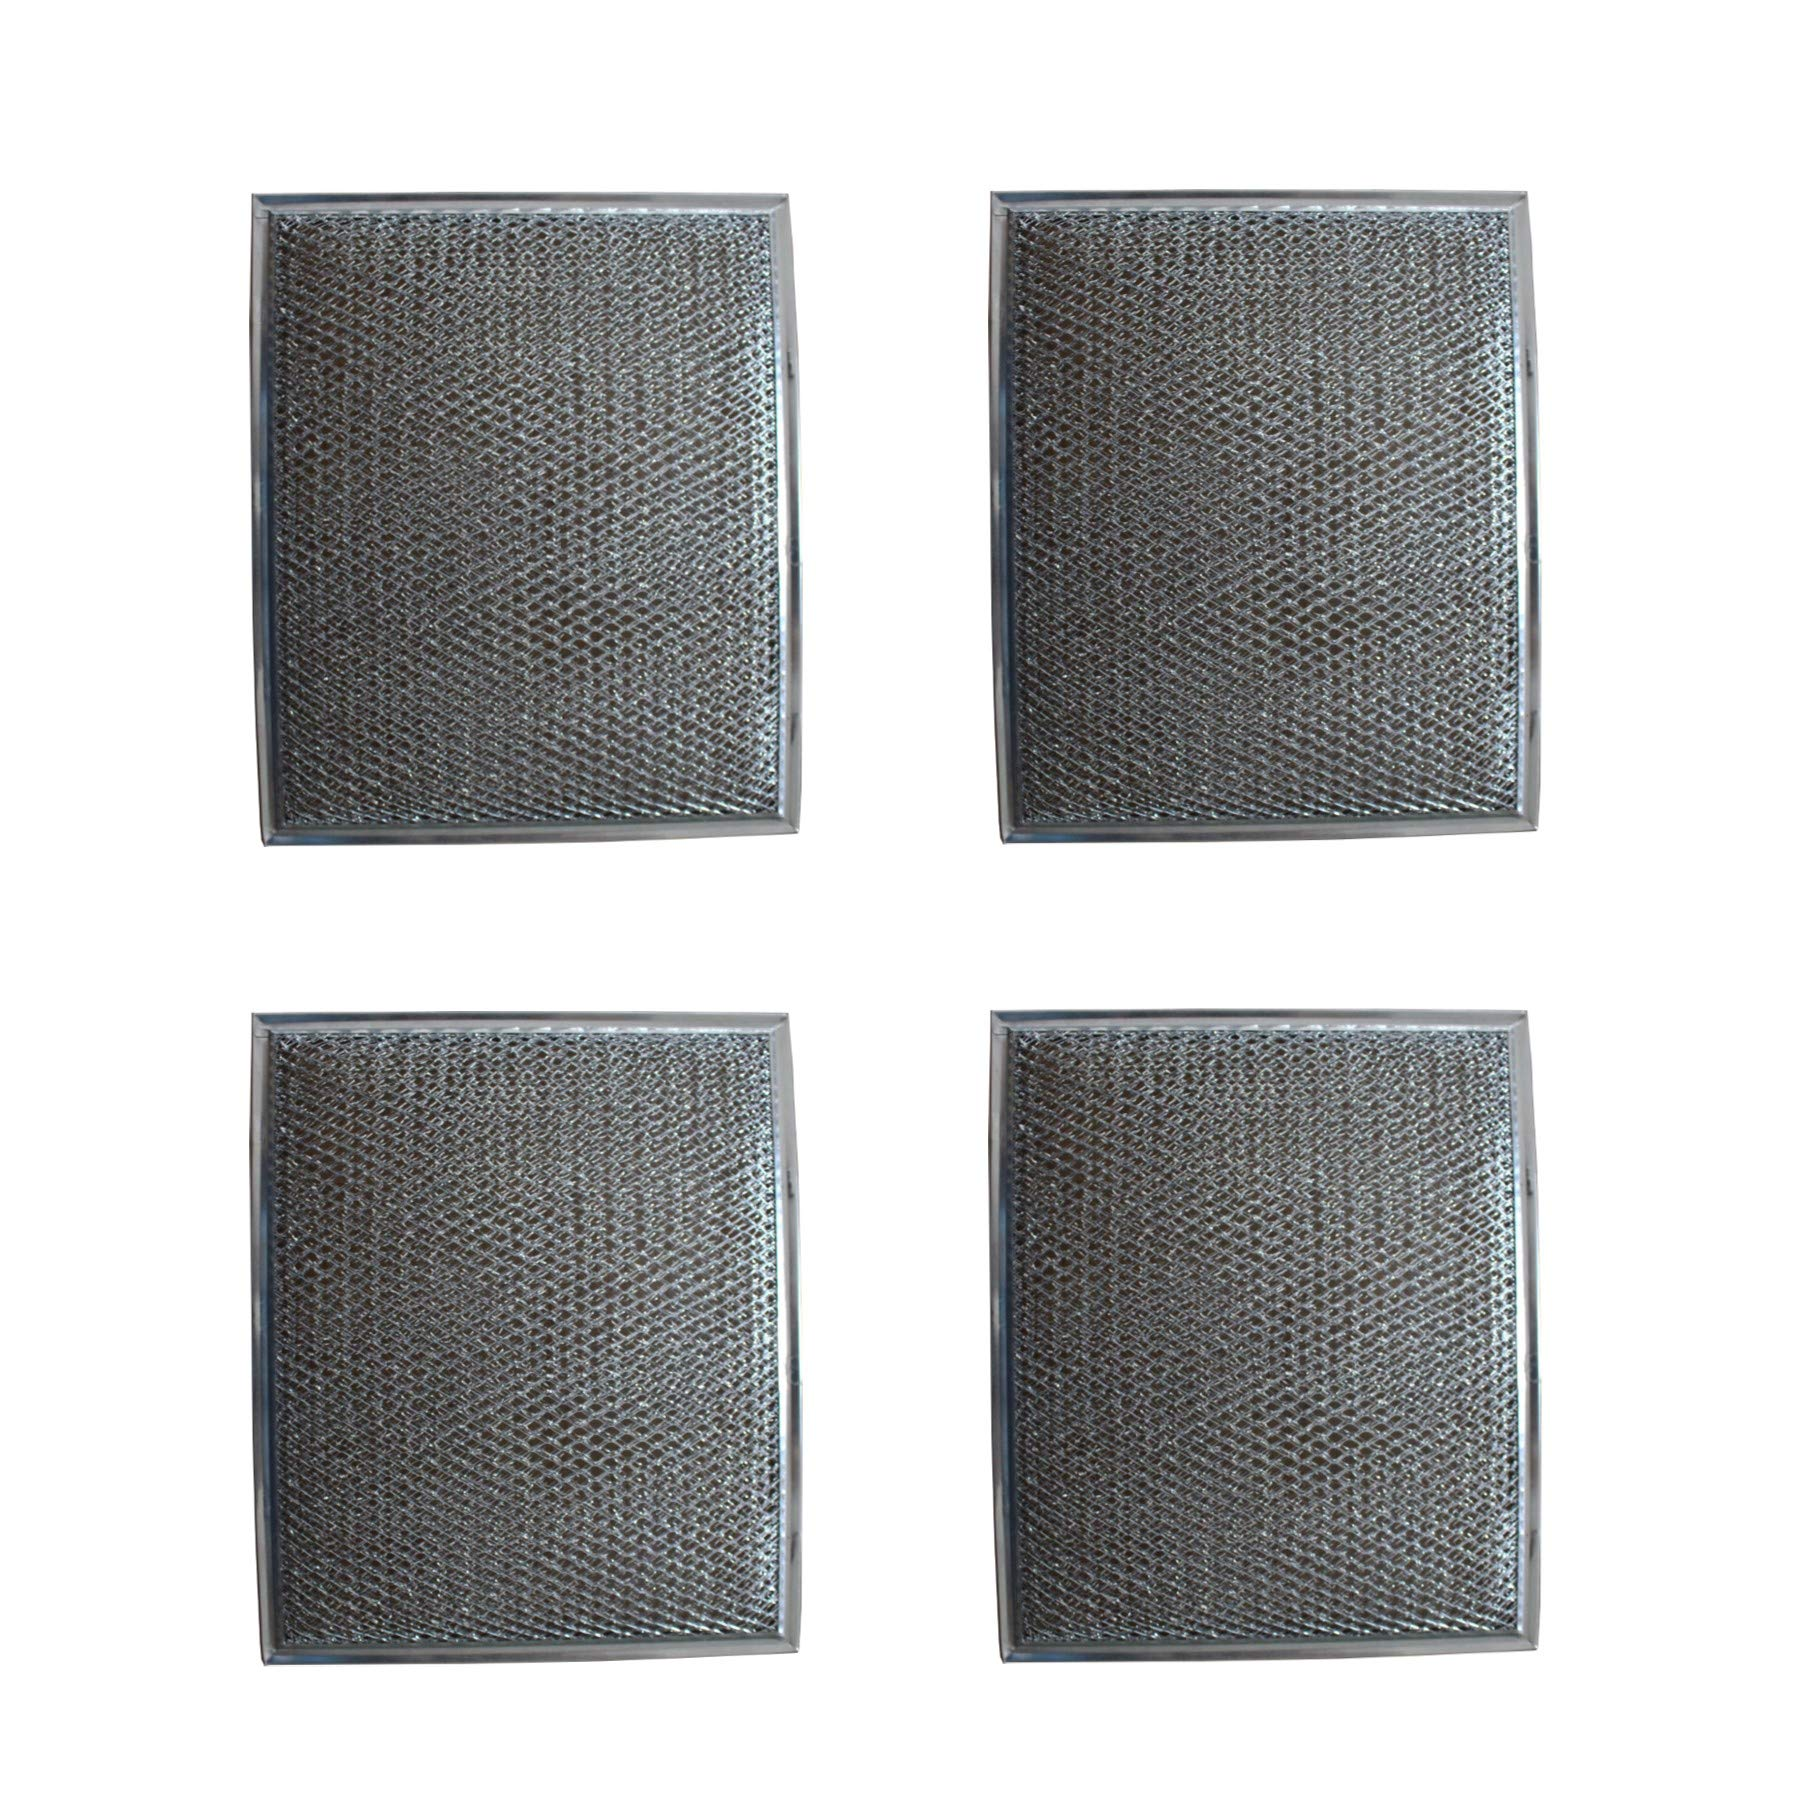 Duraflow Filtration Replacement Aluminum Filter for Many Broan / Nutone Models (4 Pack)